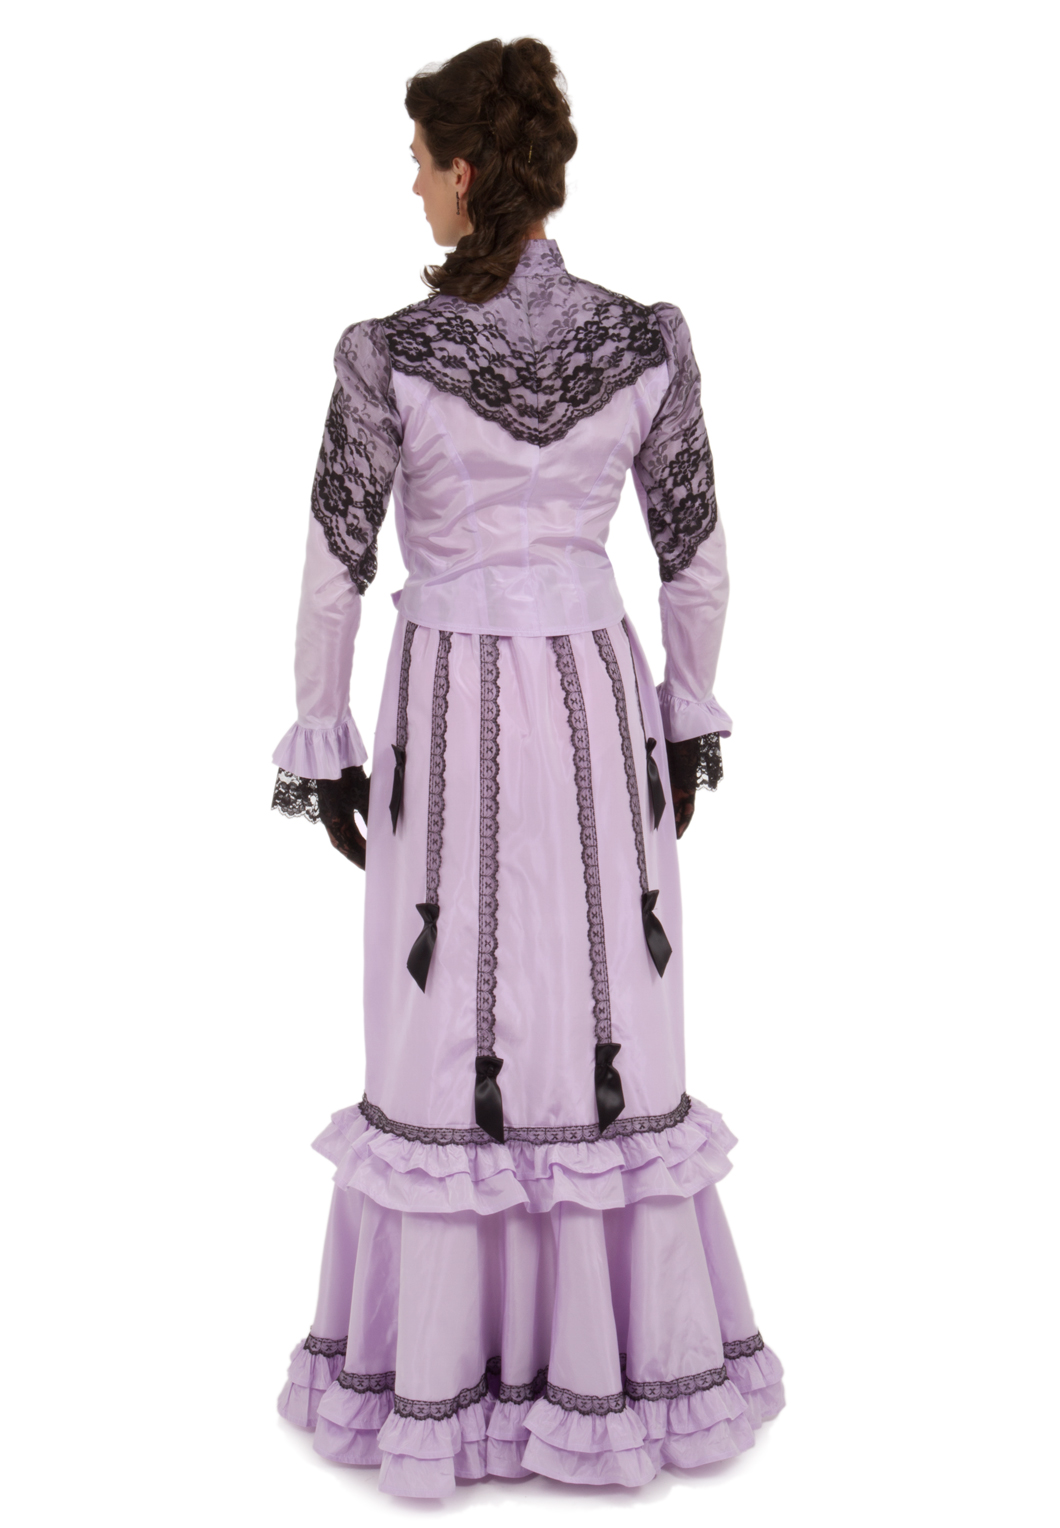 4c4b4a4bcbd857 Lilian Edwardian Fancy Blouse and Skirt Dress